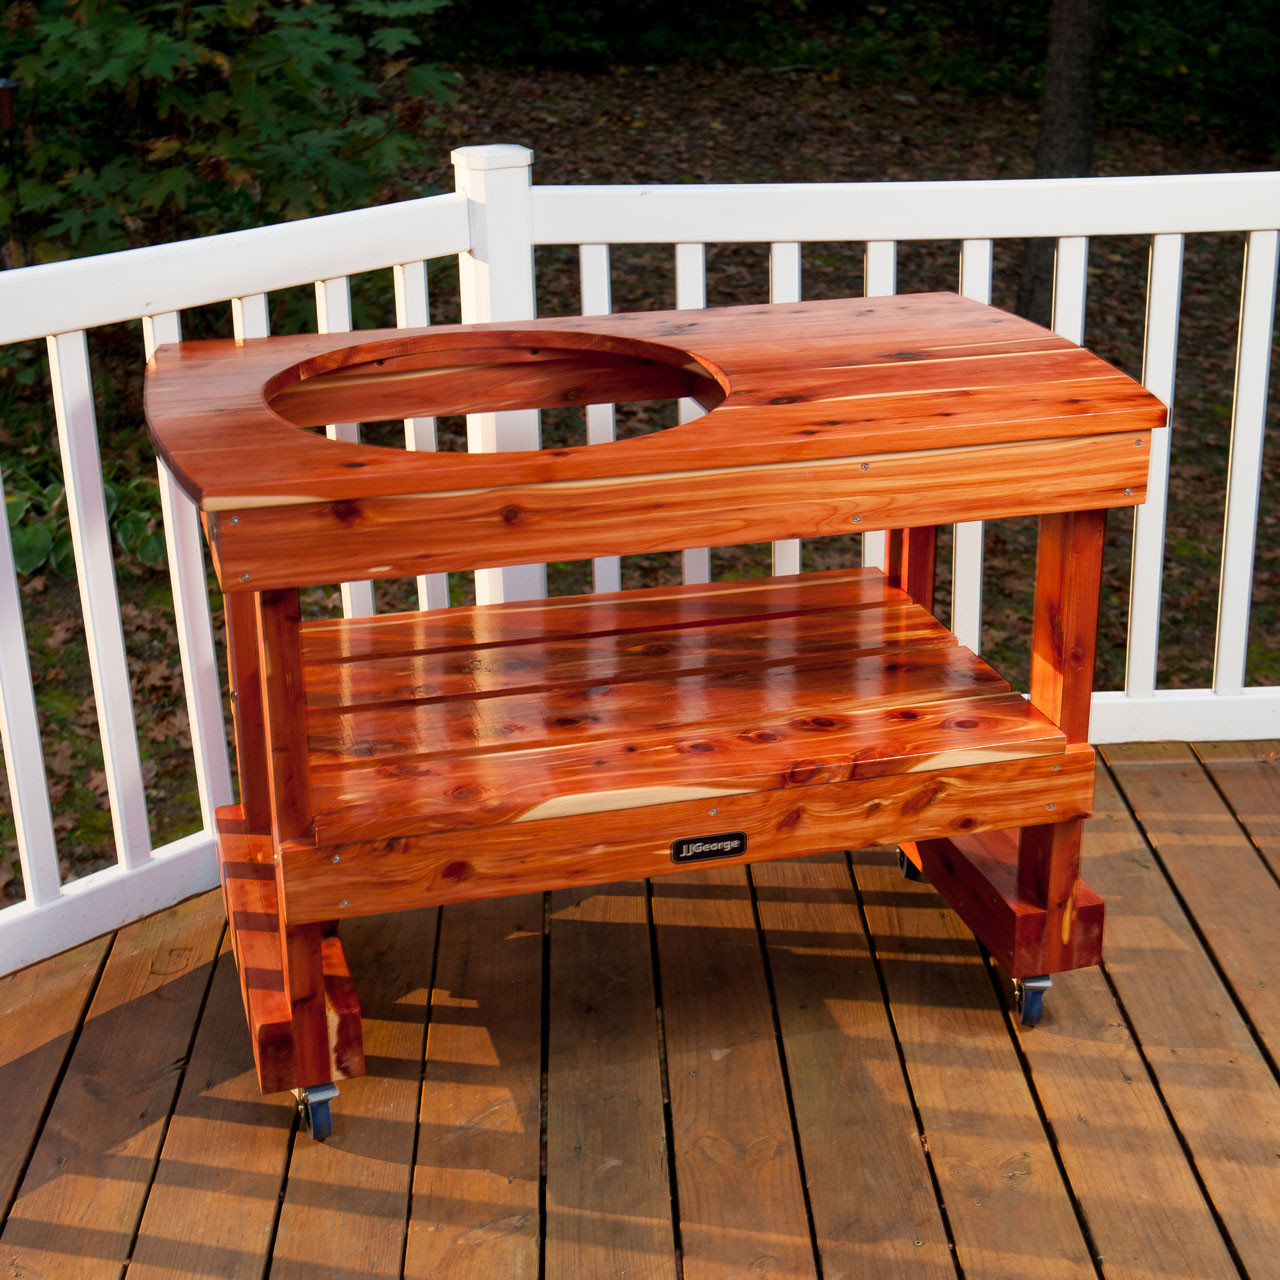 Big Green Egg Outdoor Kitchen: Big Green Egg Compact Table